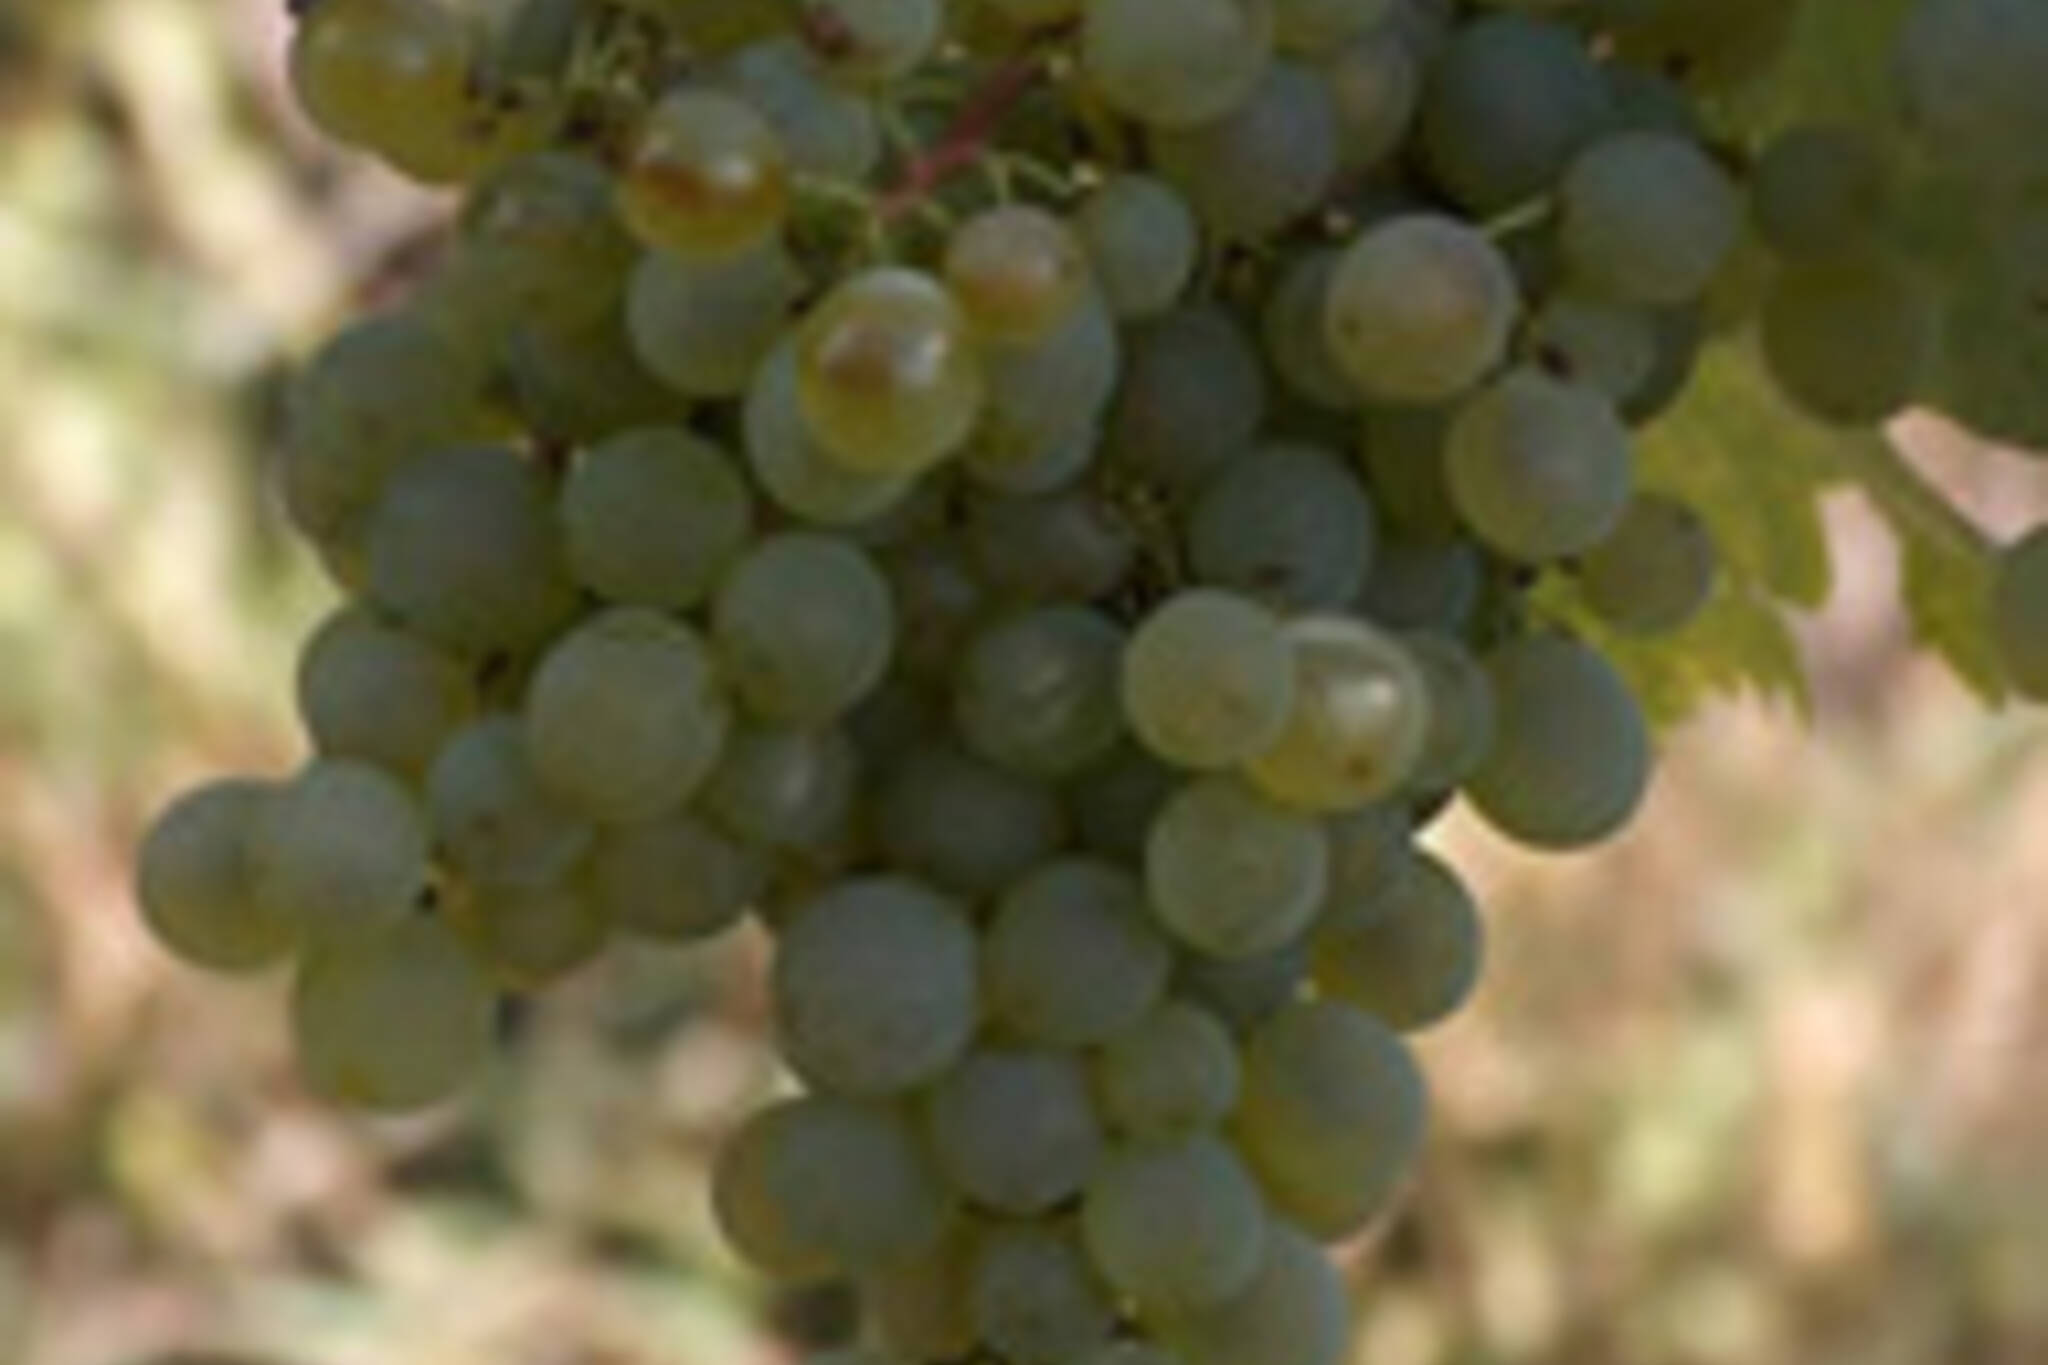 Gruner Veltliner nearly ready for harvest in Austria (image courtesy of www.wineanorak.com)